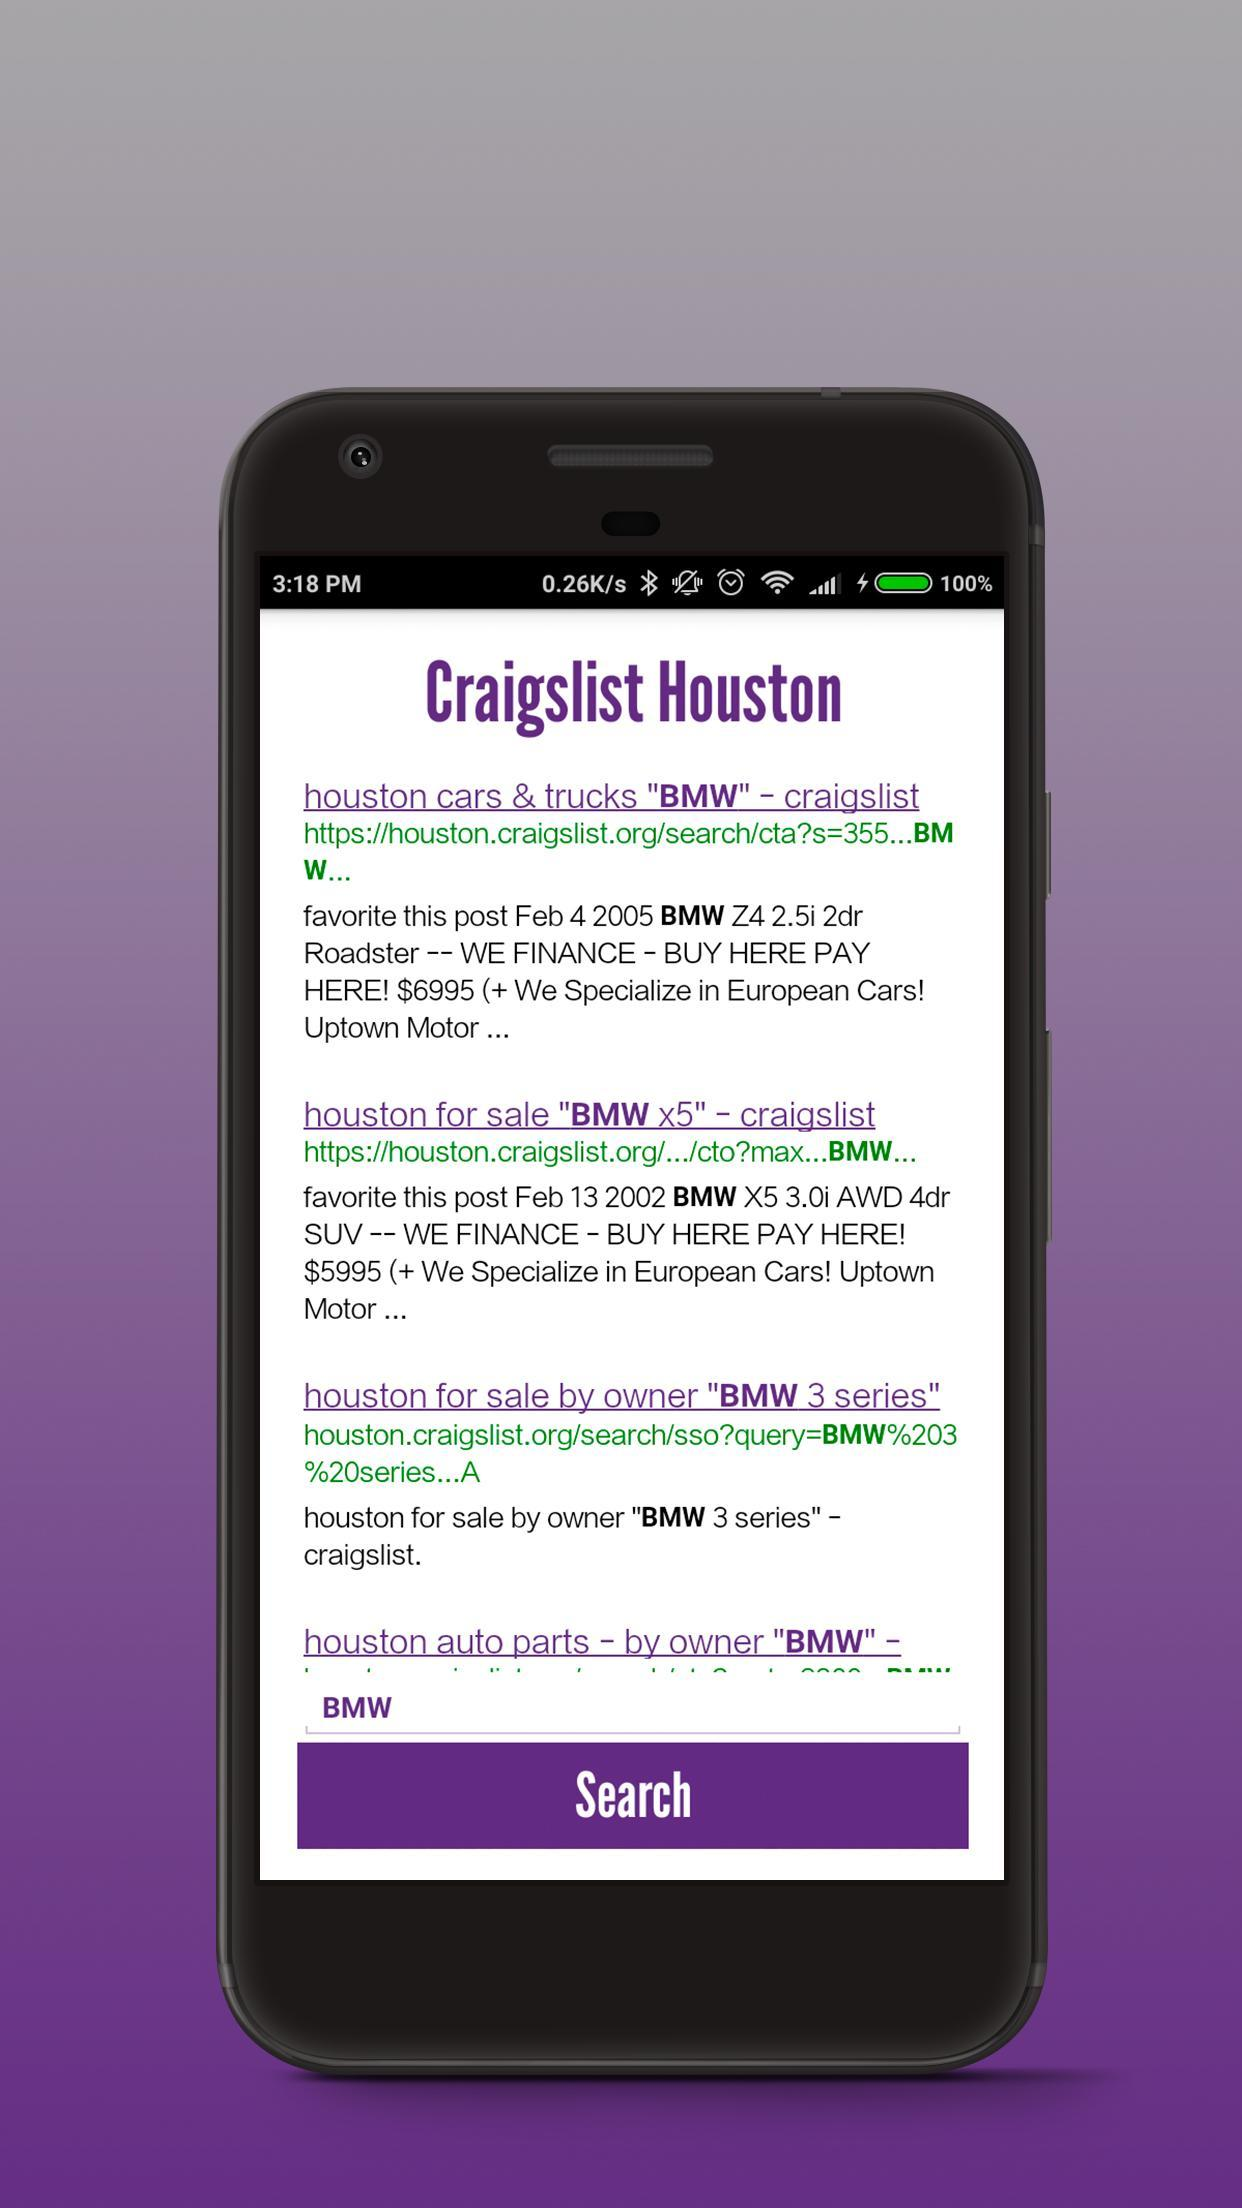 Craigslist Houston: Search Engine for Android - APK Download